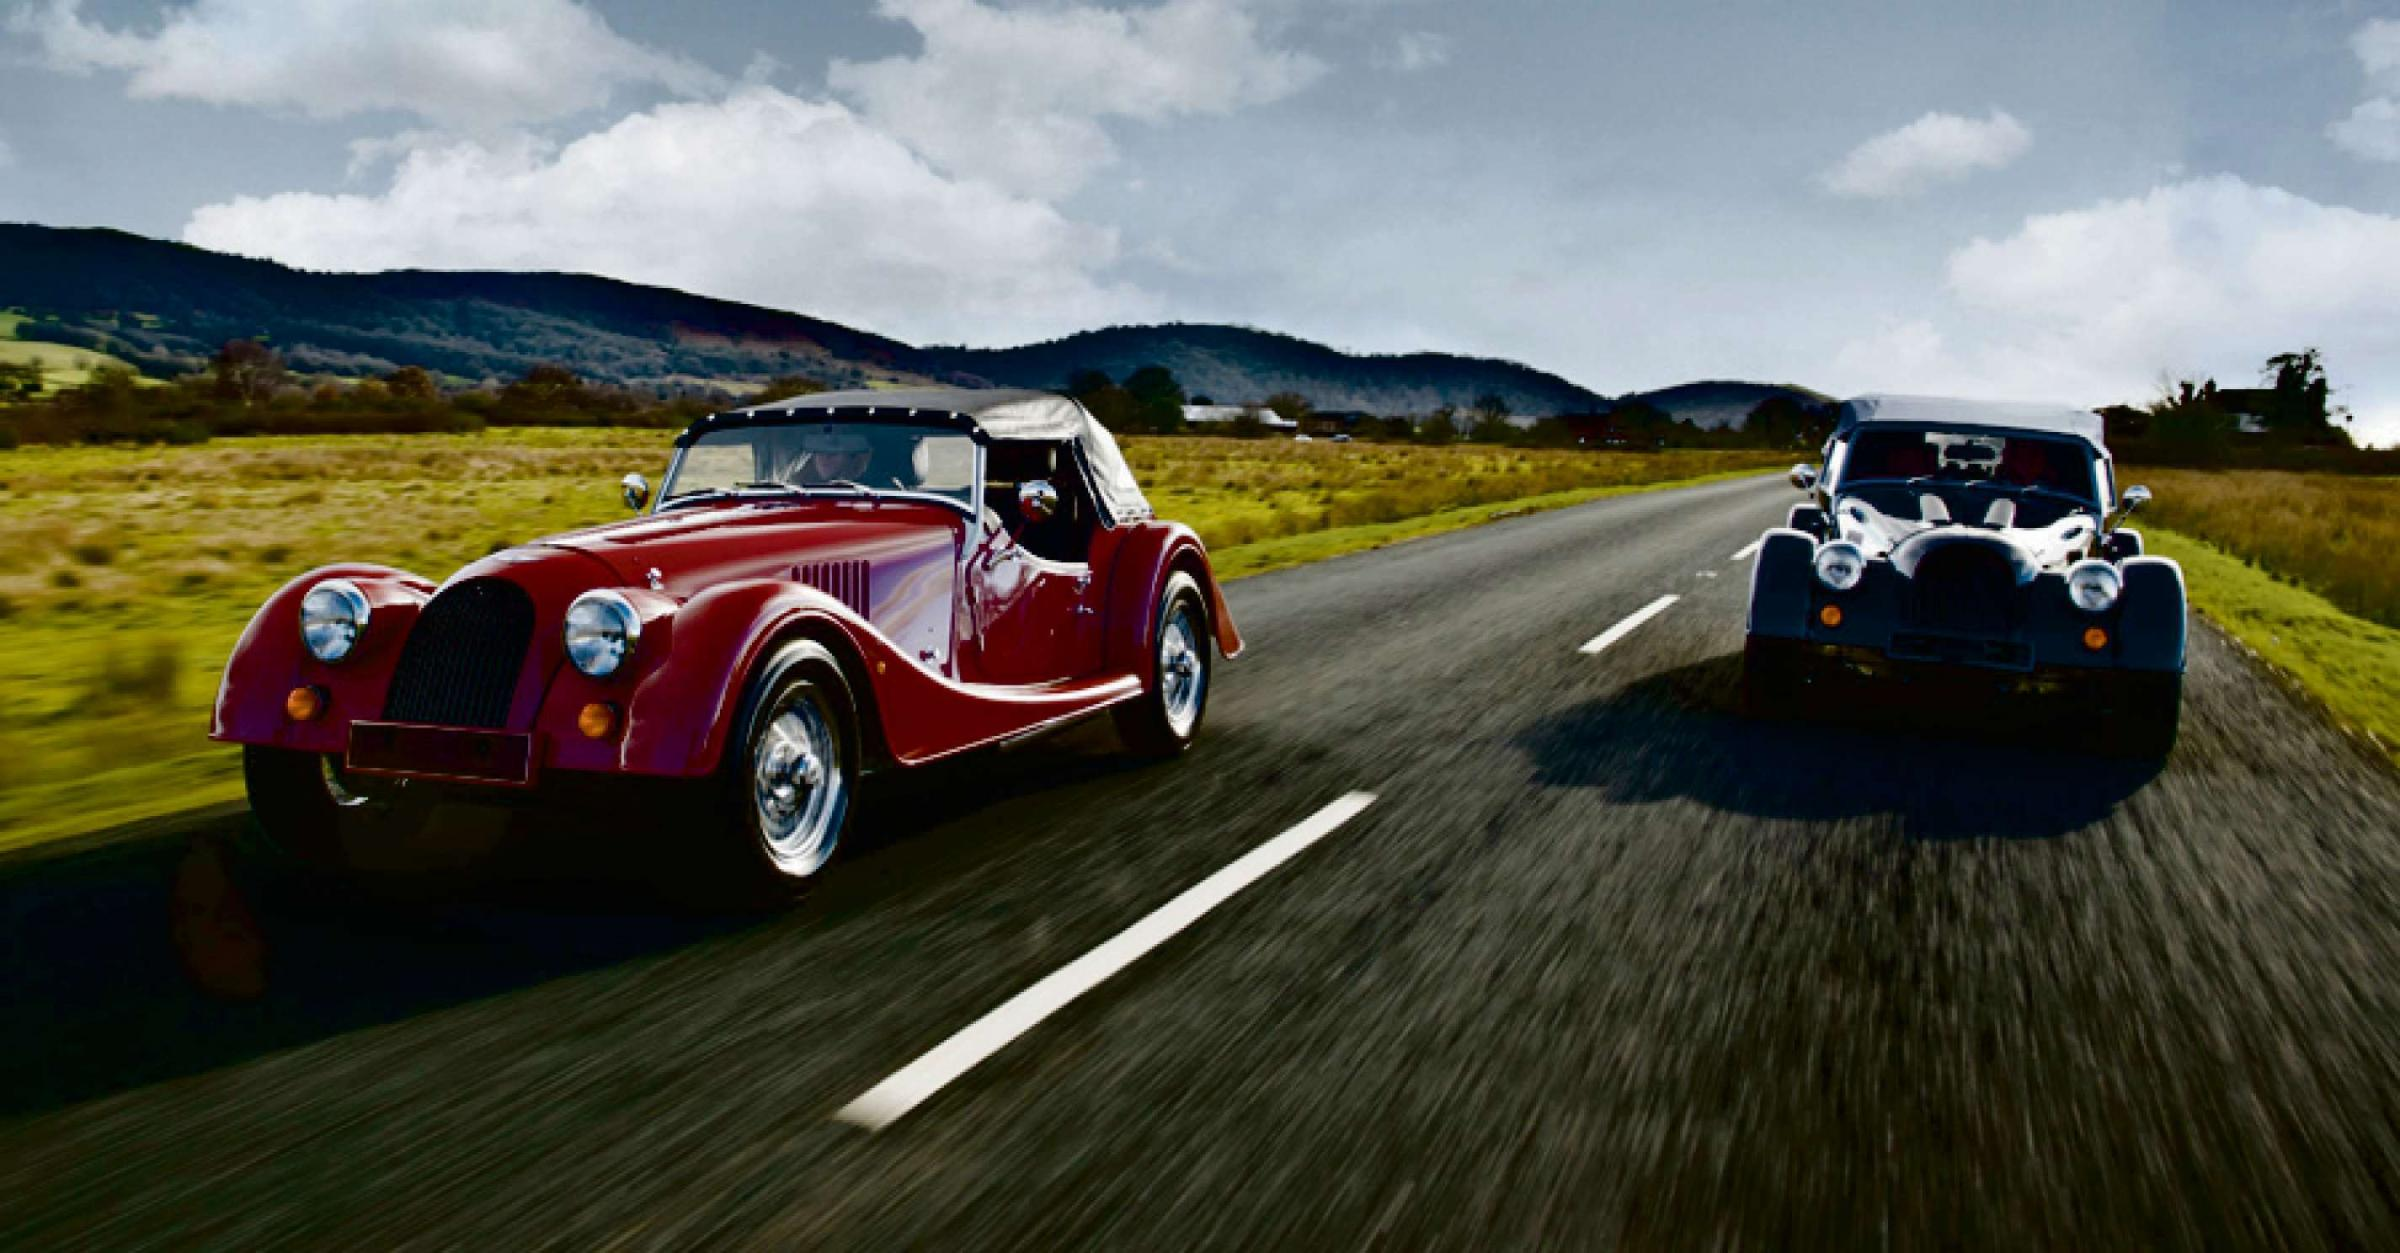 Morgan unveil new models at the Geneva Motor Show